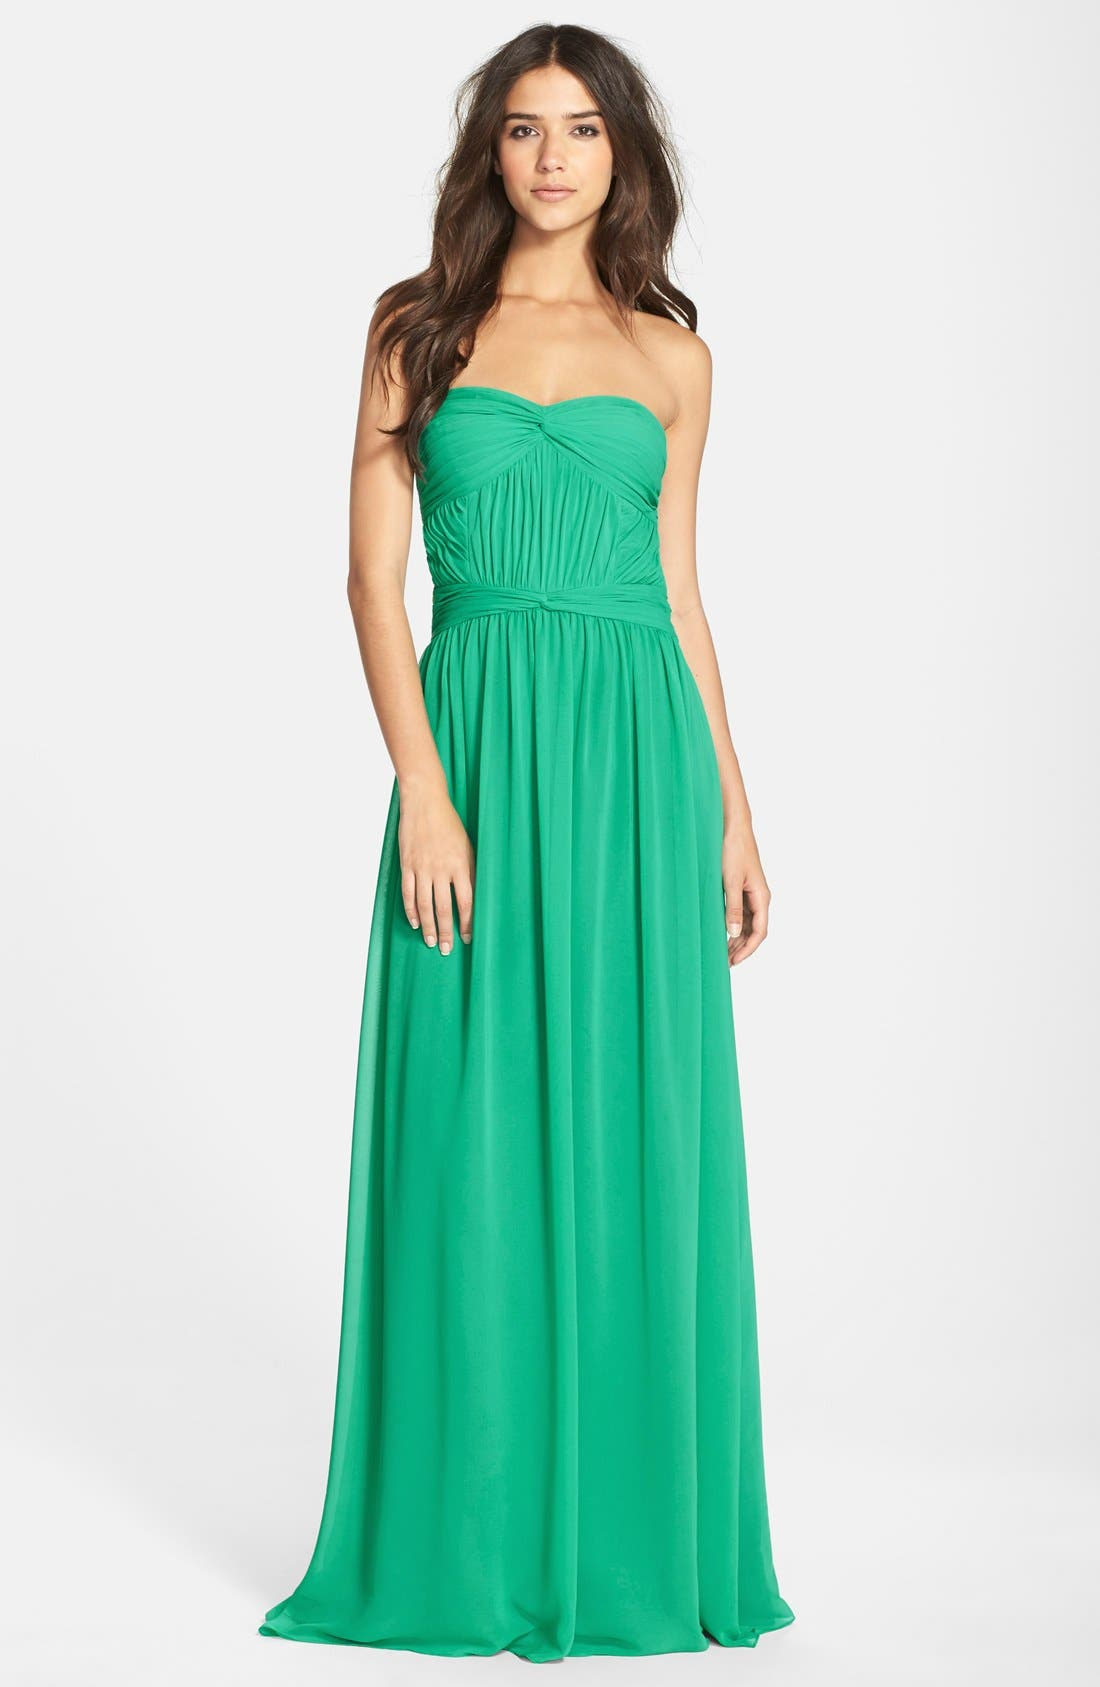 Main Image - Hailey by Adrianna Papell Chiffon Fit & Flare Gown